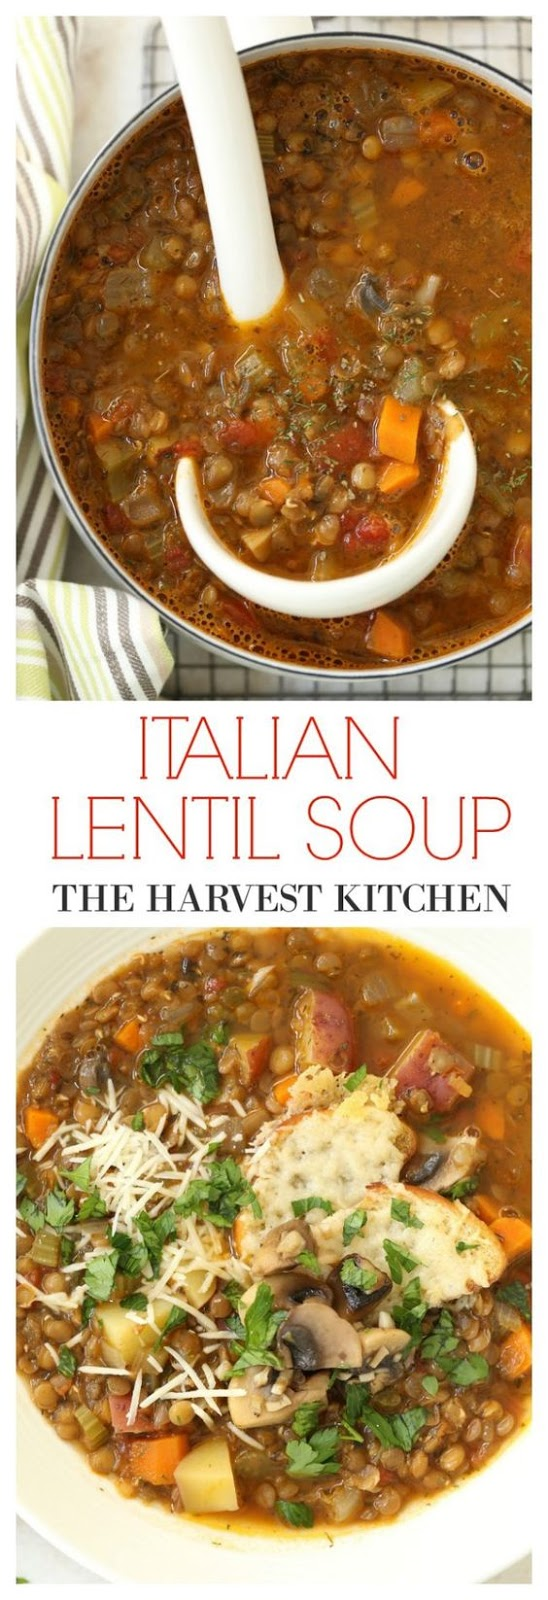 The recipe for this rich and hearty Italian Lentil Soup requires very little time, start to finish, and it takes advantage of lentils luscious state of tenderness. This is a humble soup made with the